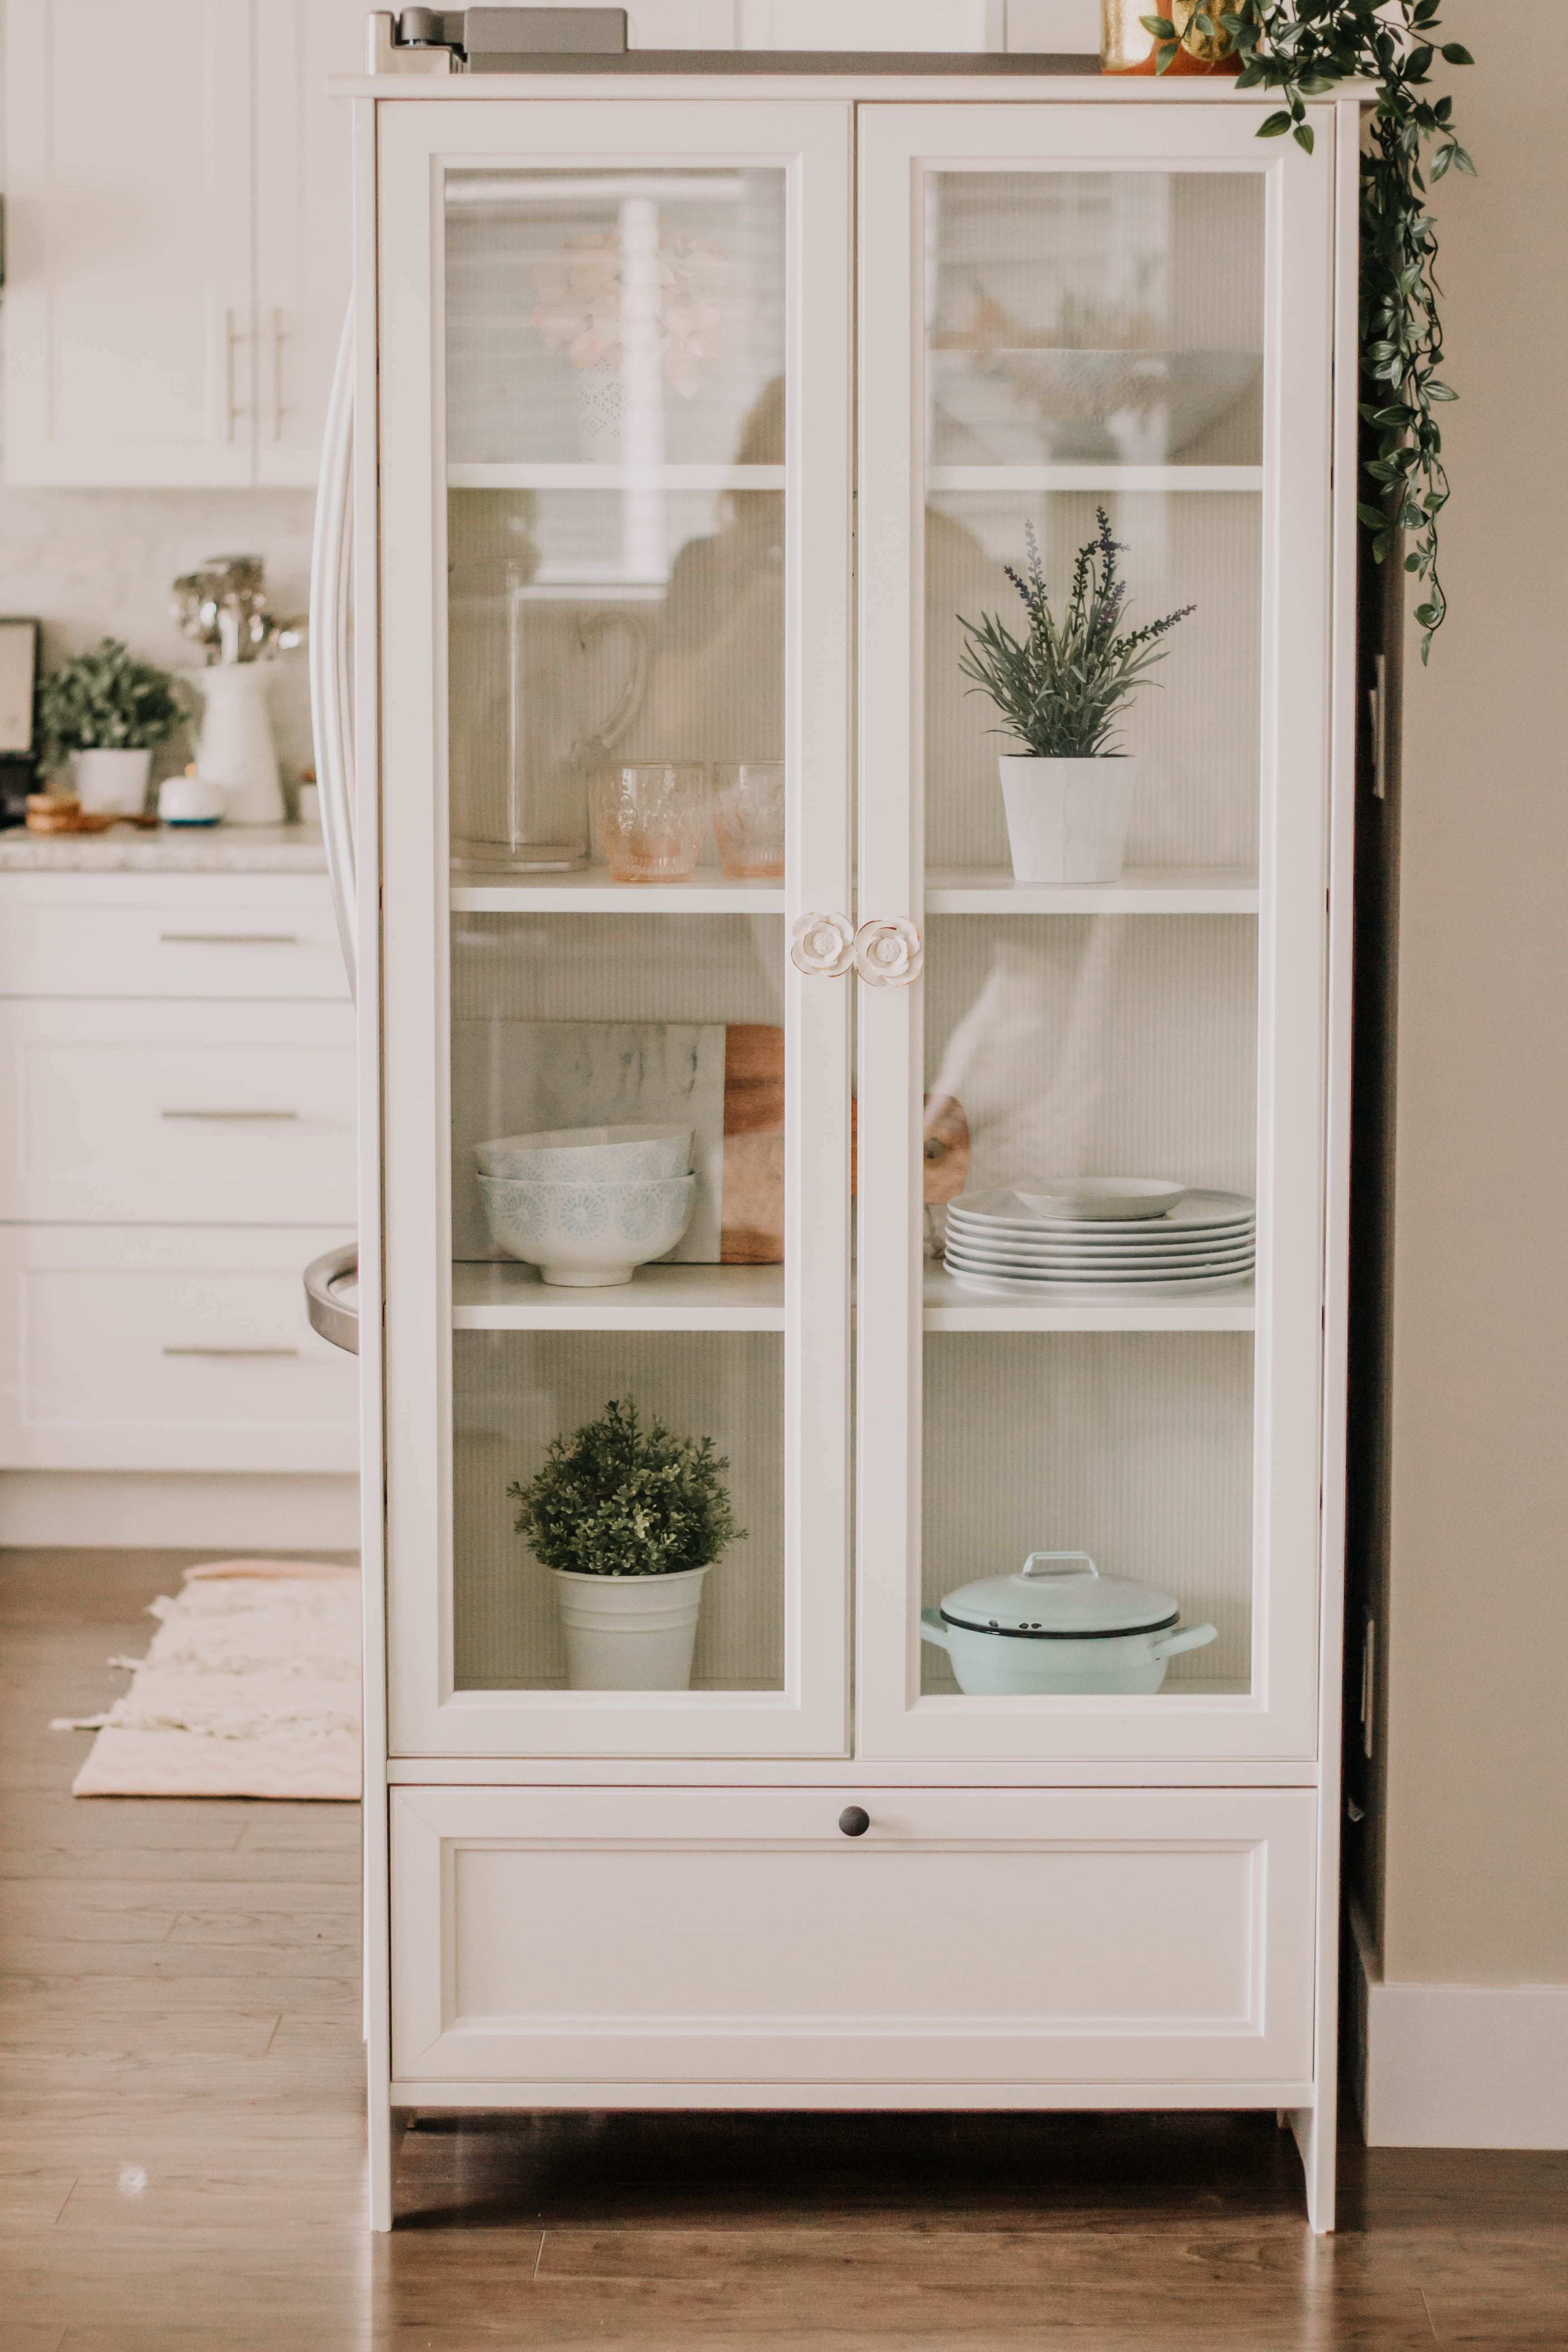 Cute White Ikea Cabinet Kitchen Display Cabinet Ikea Cabinets Glass Cabinets Display